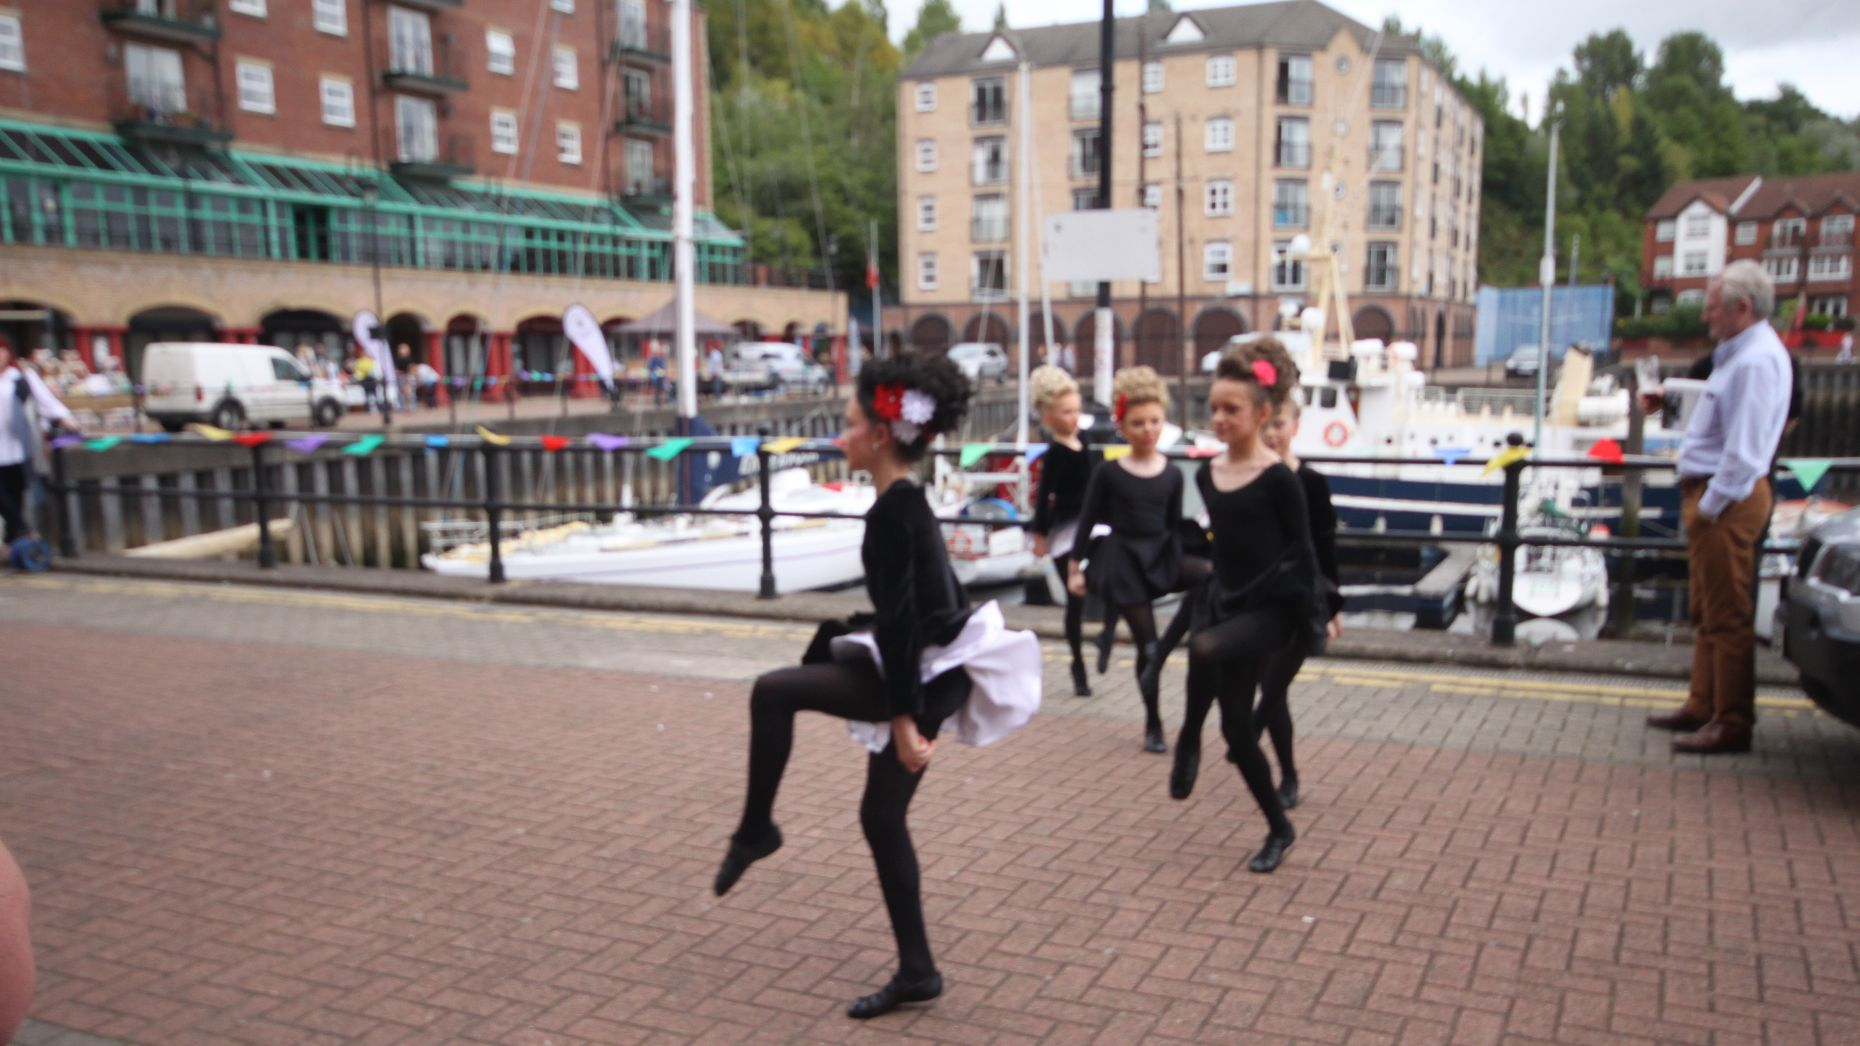 Irish Dancing/ St. Peter's Fete, St. Peter's Wharf, St Peter's Basin, Newcastle upon Tyne